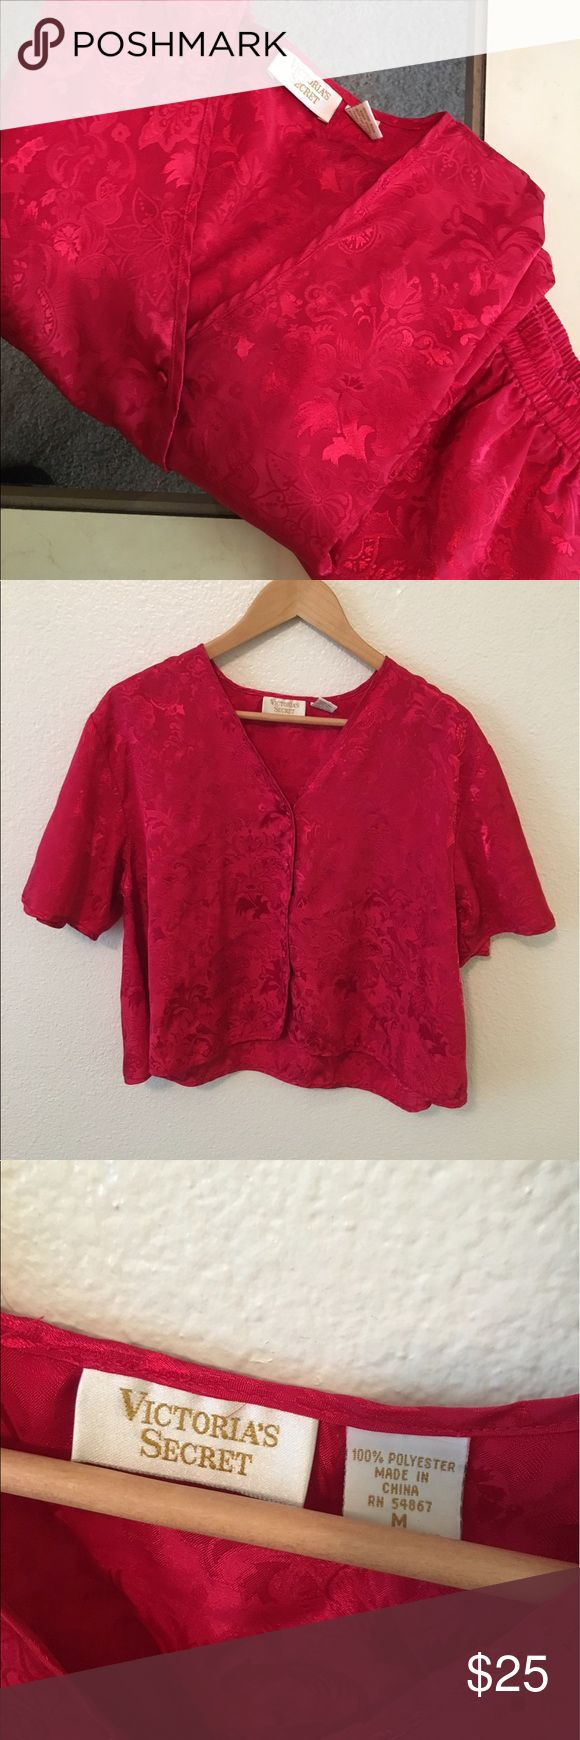 Vintage VS Red Sleepwear Set Size M vintage VS top and bottom sleepwear set. Shorts are stretchy so could also fit someone who's a S/M as well. In excellent condition. Items are stored in a smoke and pet free environment. I ship daily excluding Sunday's and holidays. Open to offers! Bundles discounted. Victoria's Secret Intimates & Sleepwear Pajamas